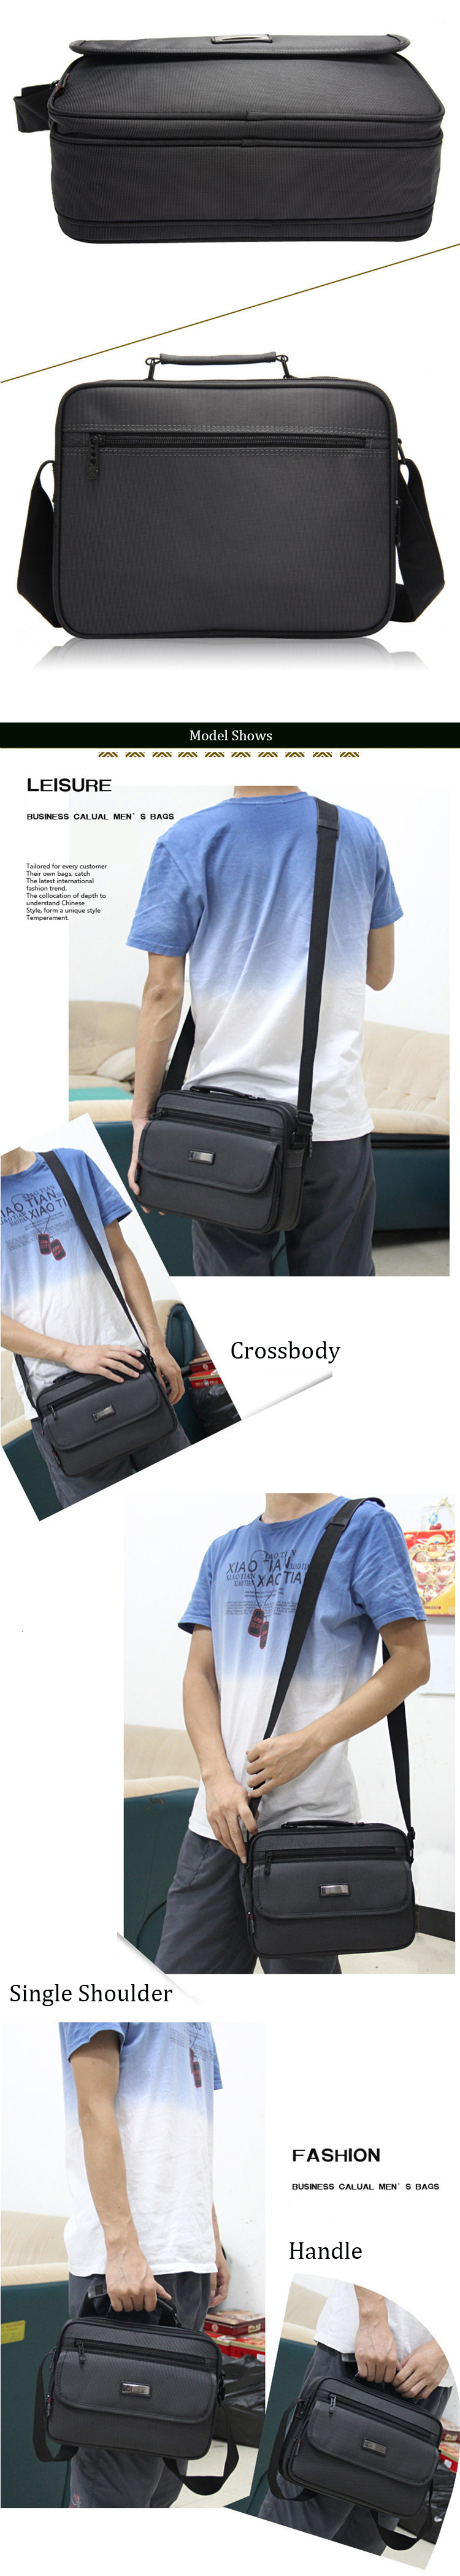 Hc1354fcc5f1c471a948f2fc9840c89a69 - New Briefcases Of Sizes Men's Laptop Bag Top Quality Waterproof Men bags Business Package Shoulder Bag masculina briefcase